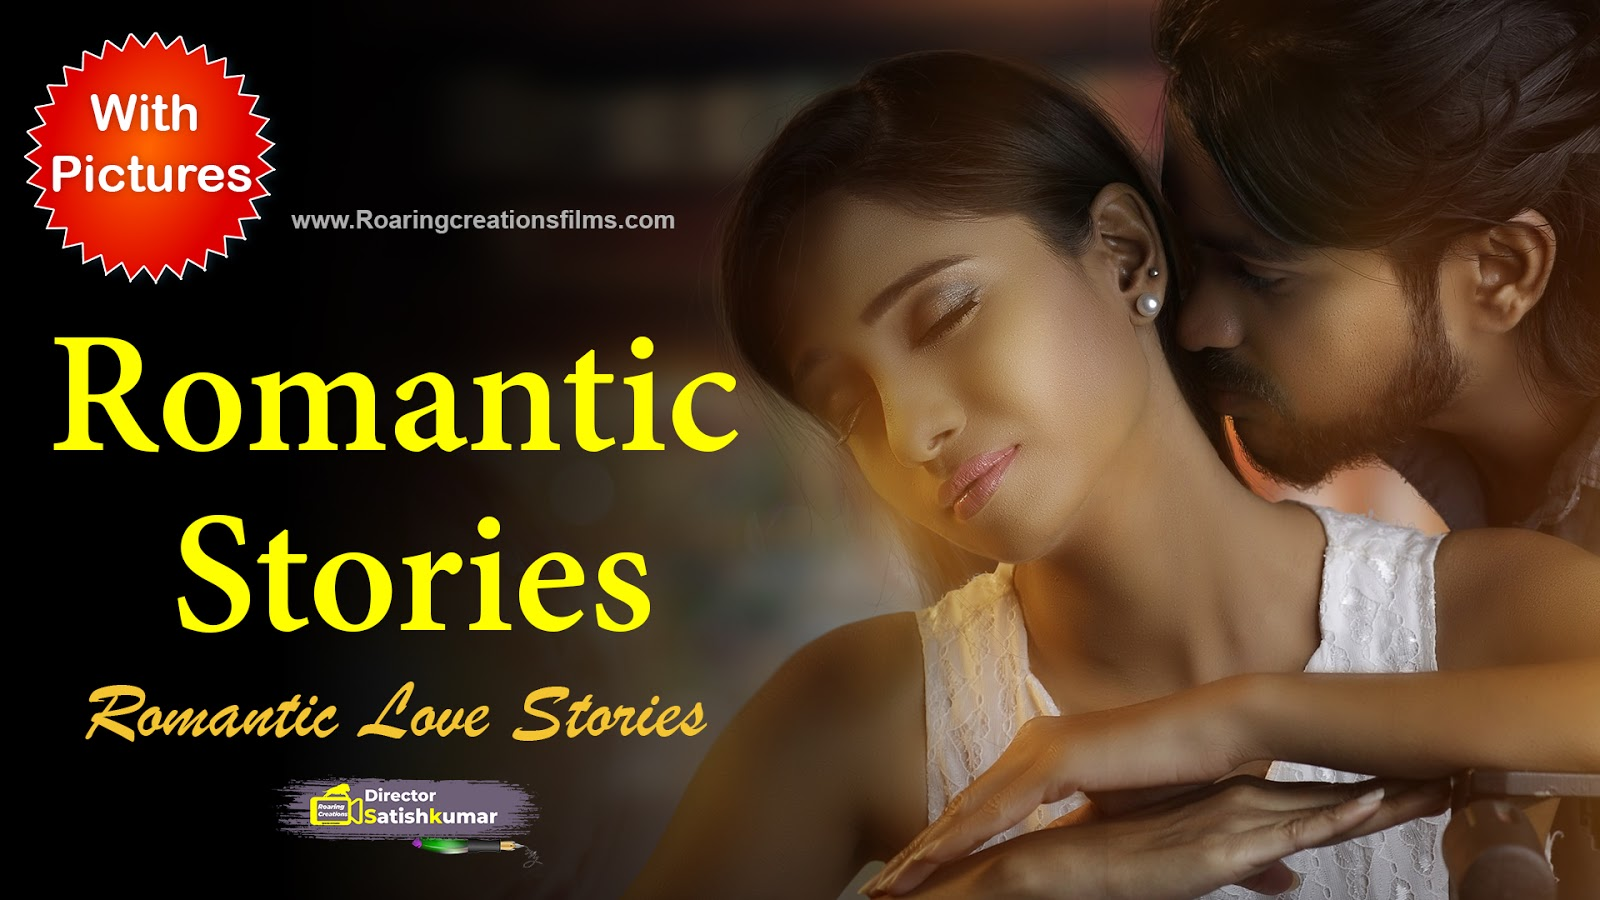 Romantic Stories in English - Romantic Love Stories